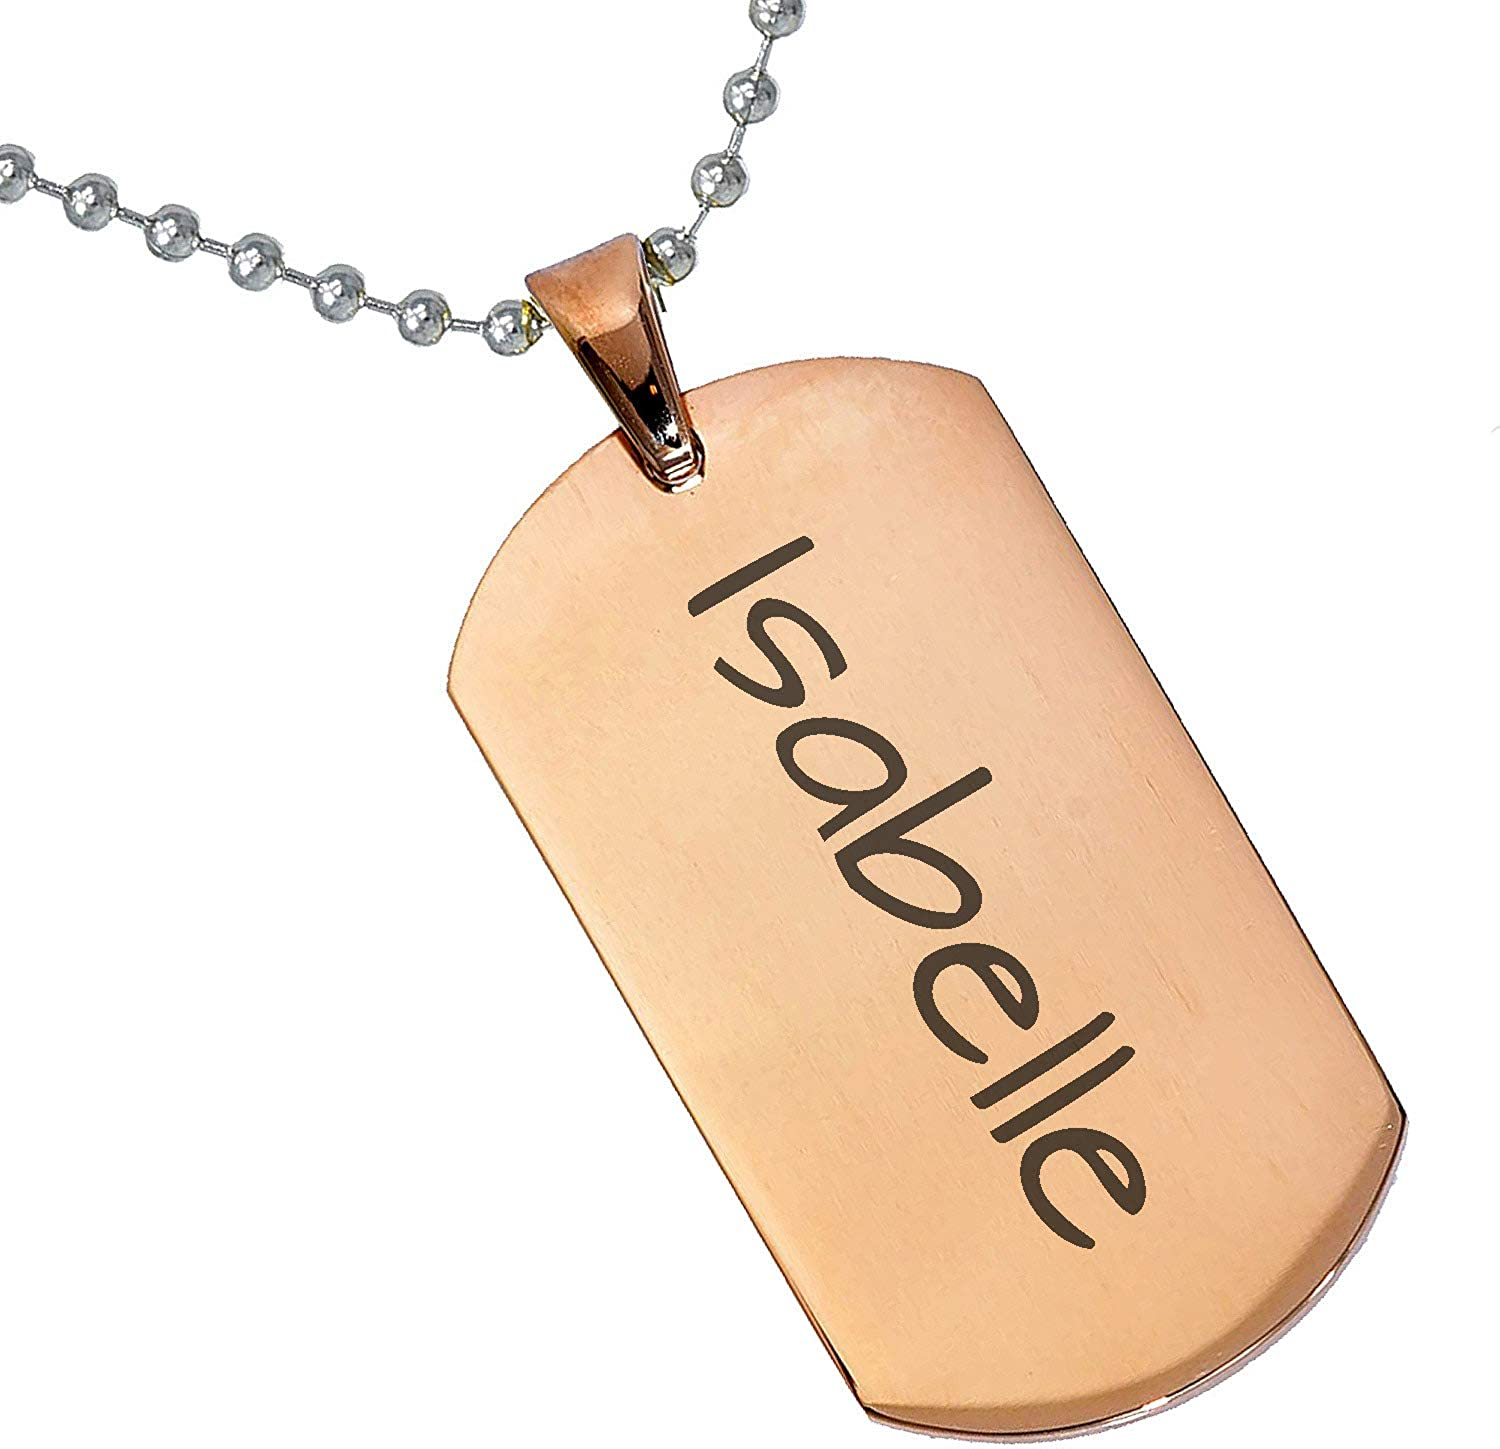 Stainless Steel Silver Gold Black Rose Gold Color Baby Name Isabelle Engraved Personalized Gifts For Son Daughter Boyfriend Girlfriend Initial Customizable Pendant Necklace Dog Tags 24 Ball Chain